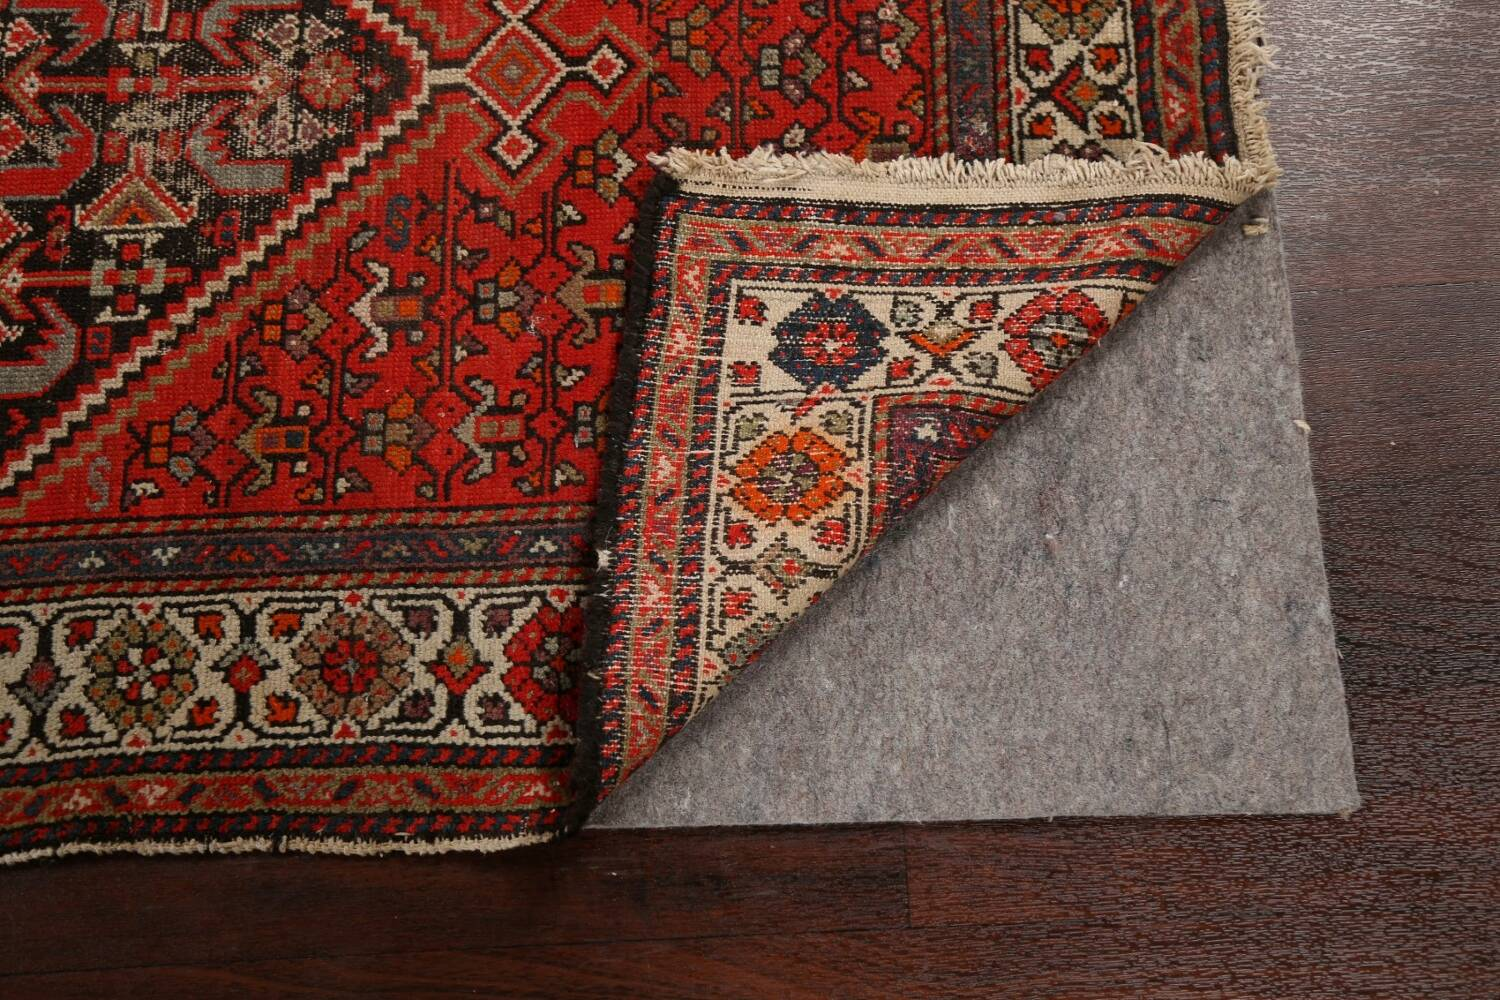 Antique Vegetable Dye Malayer Persian Runner Rug 3x11 image 7